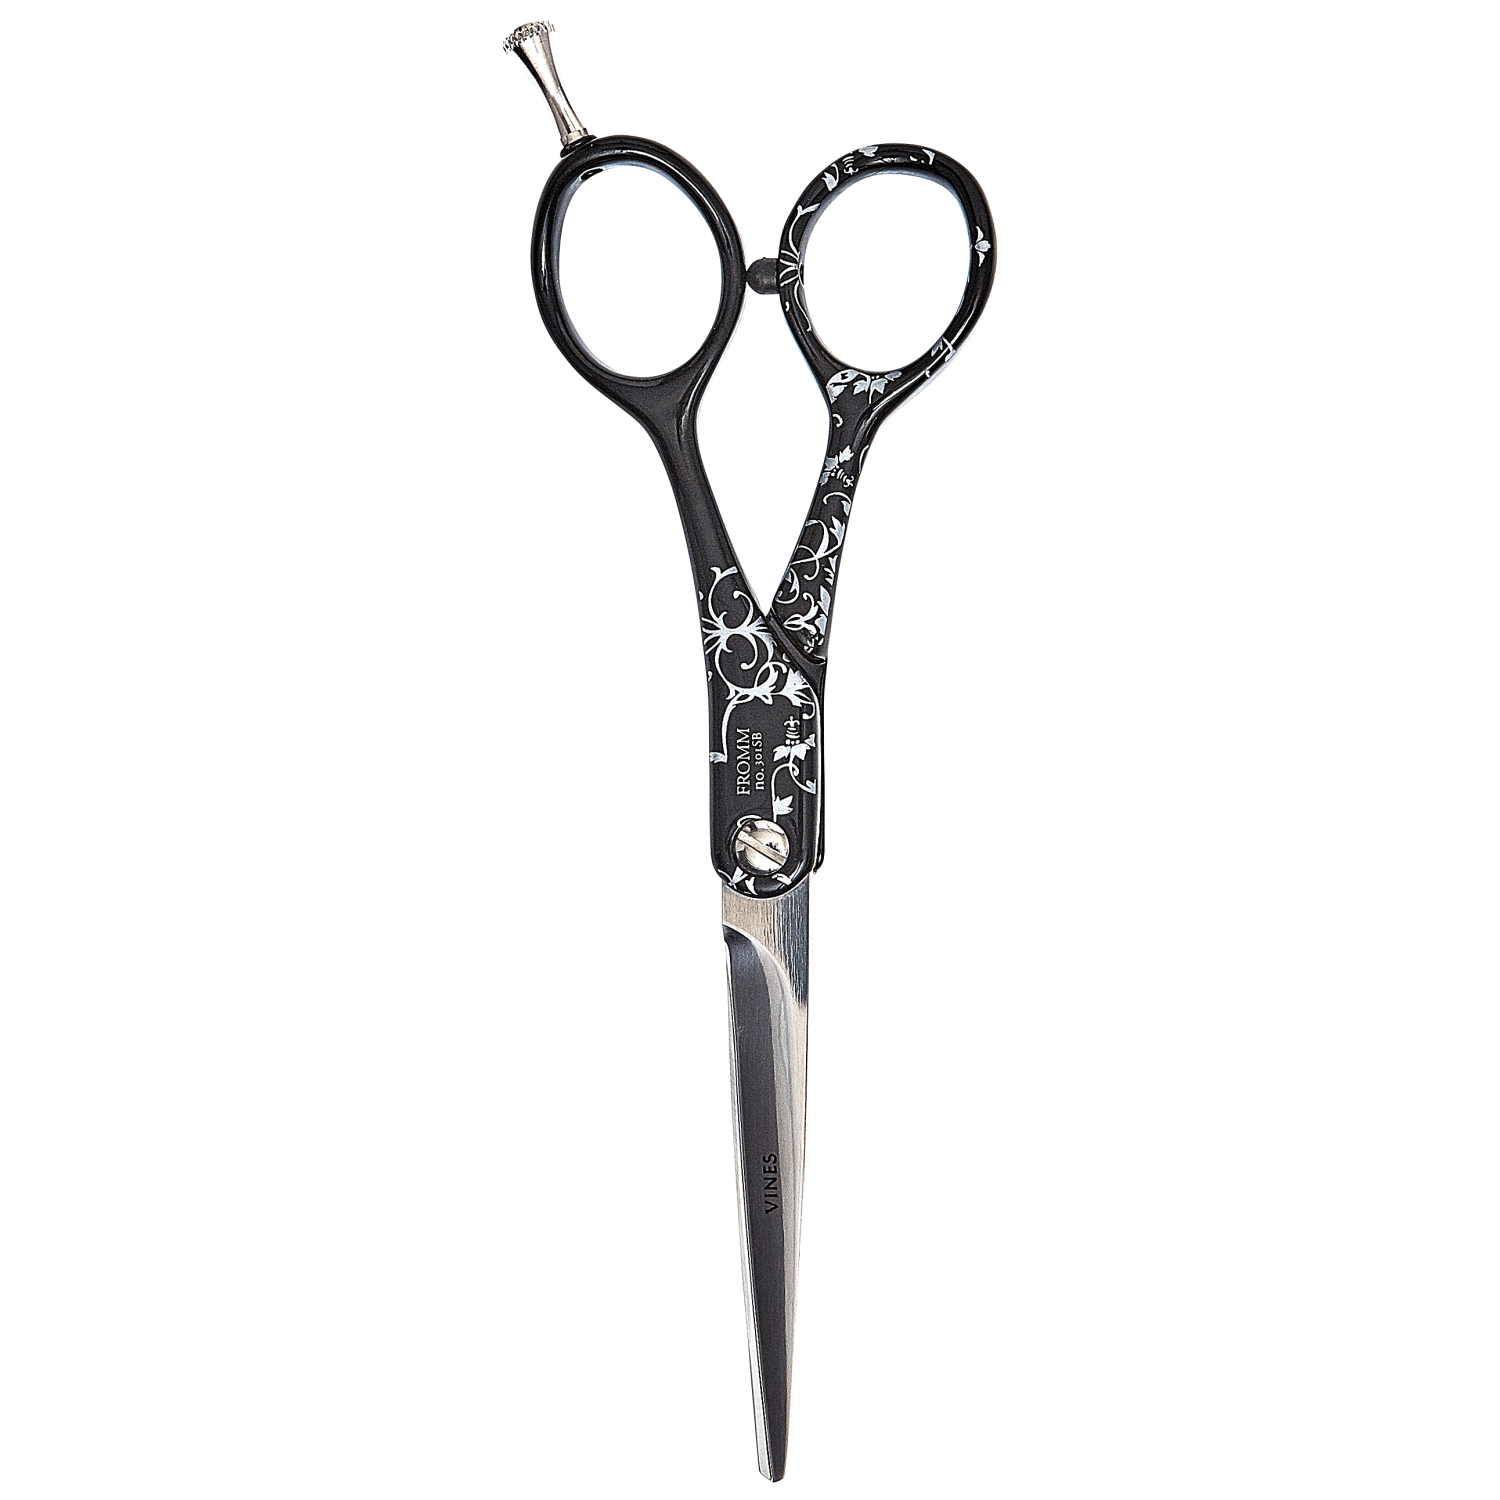 Fromm Black Handle Vines Shear